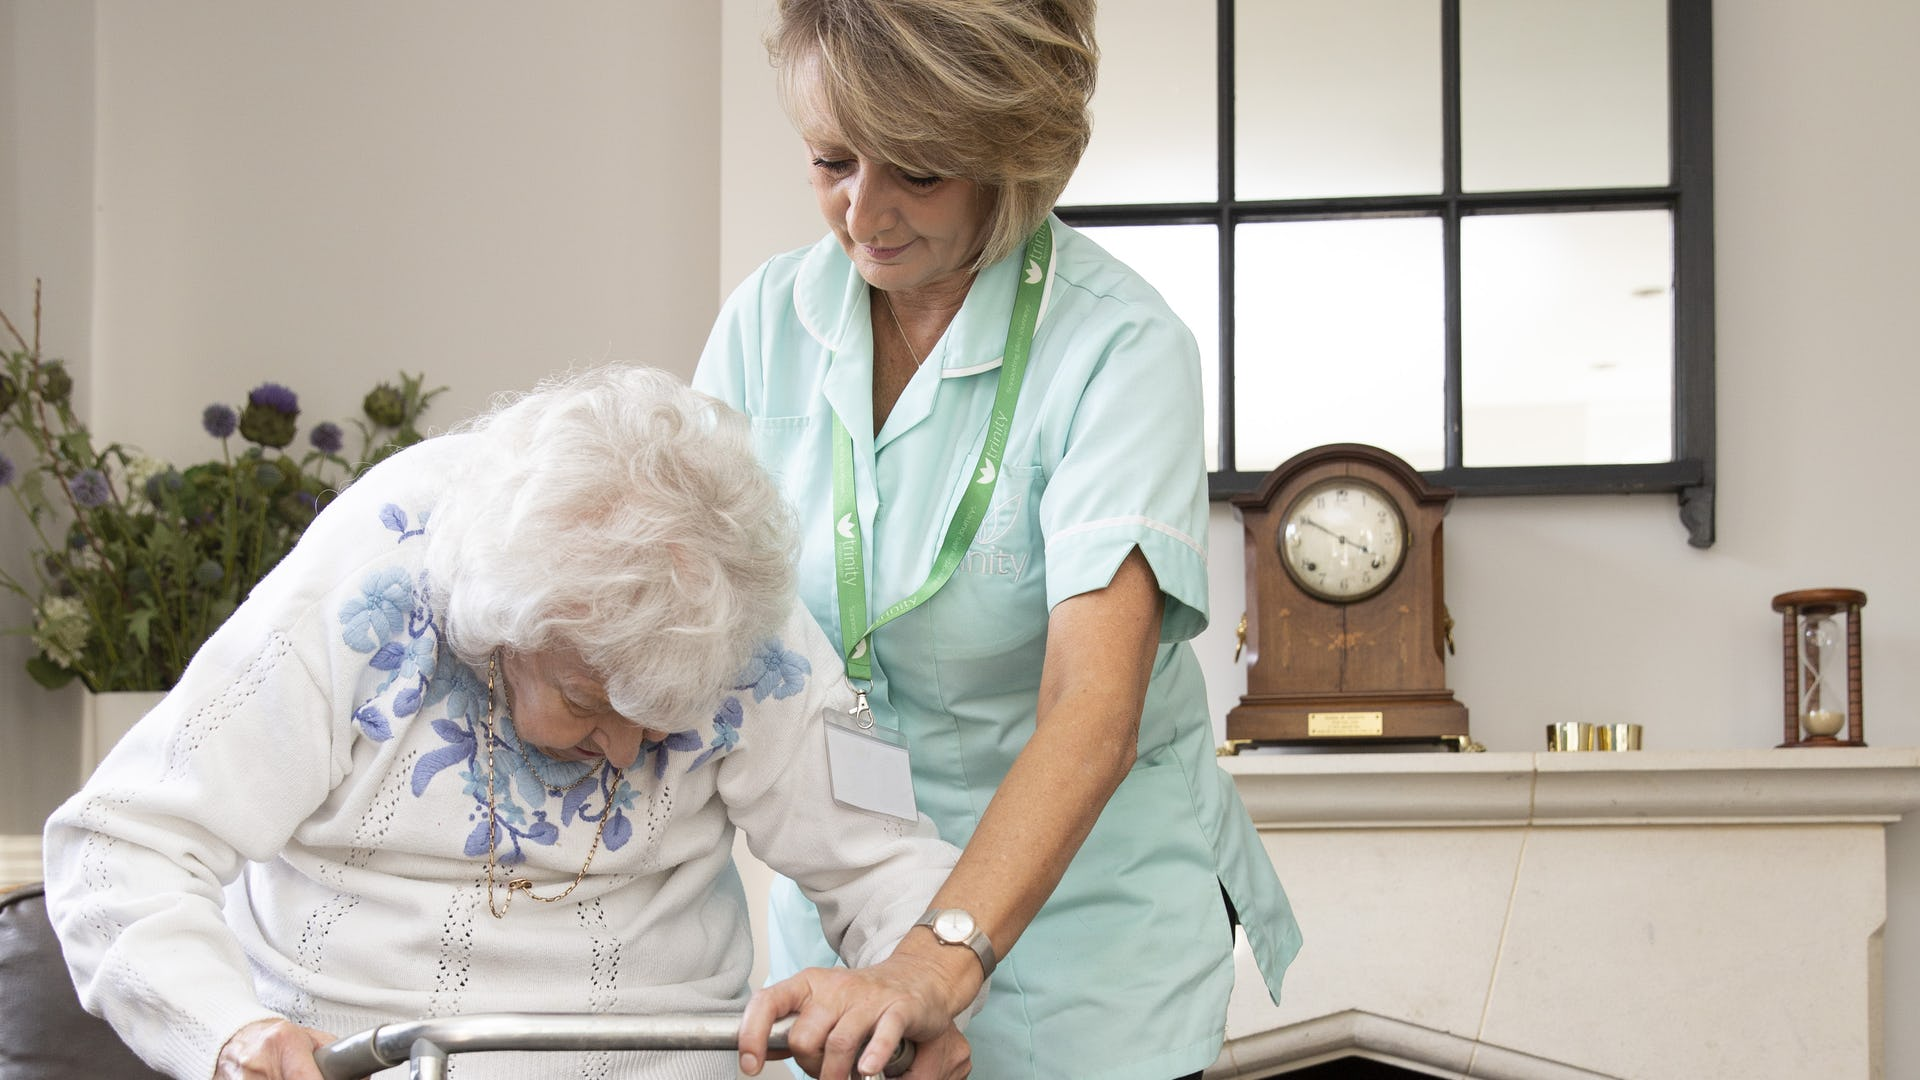 Carer supporting while elderly person is using a walking frame